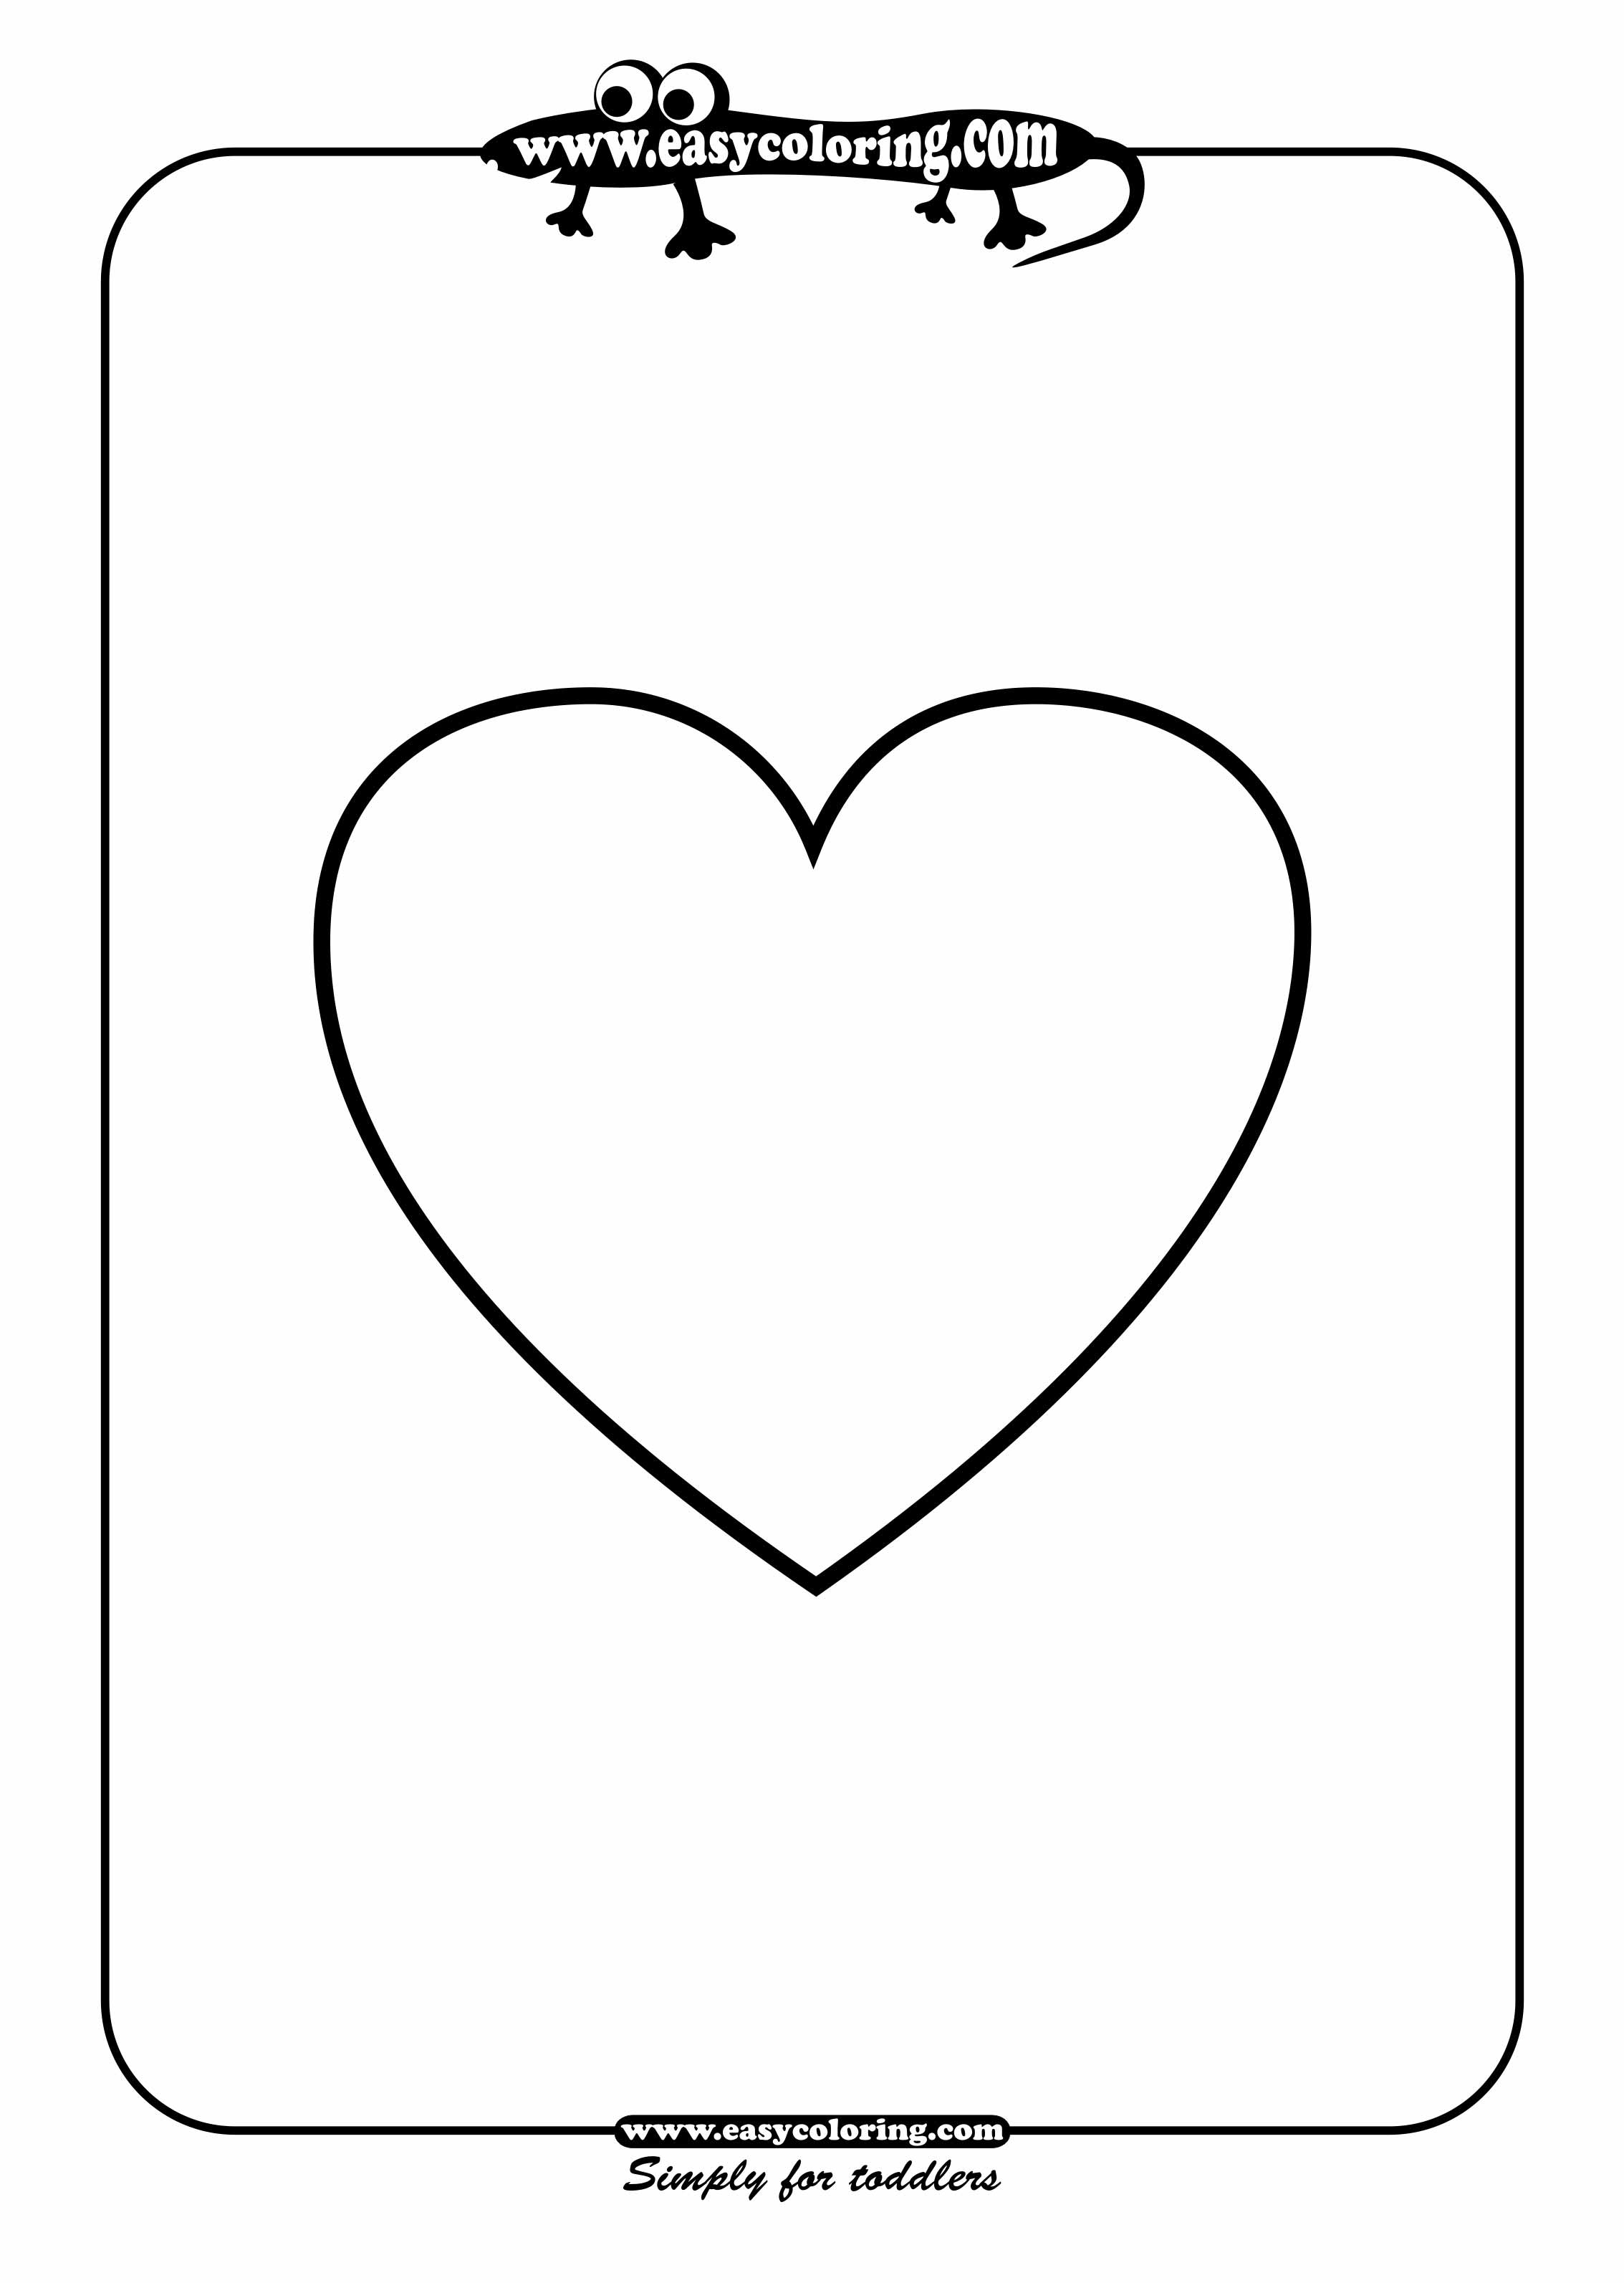 heart simple shapes easy coloring pages for toddlers